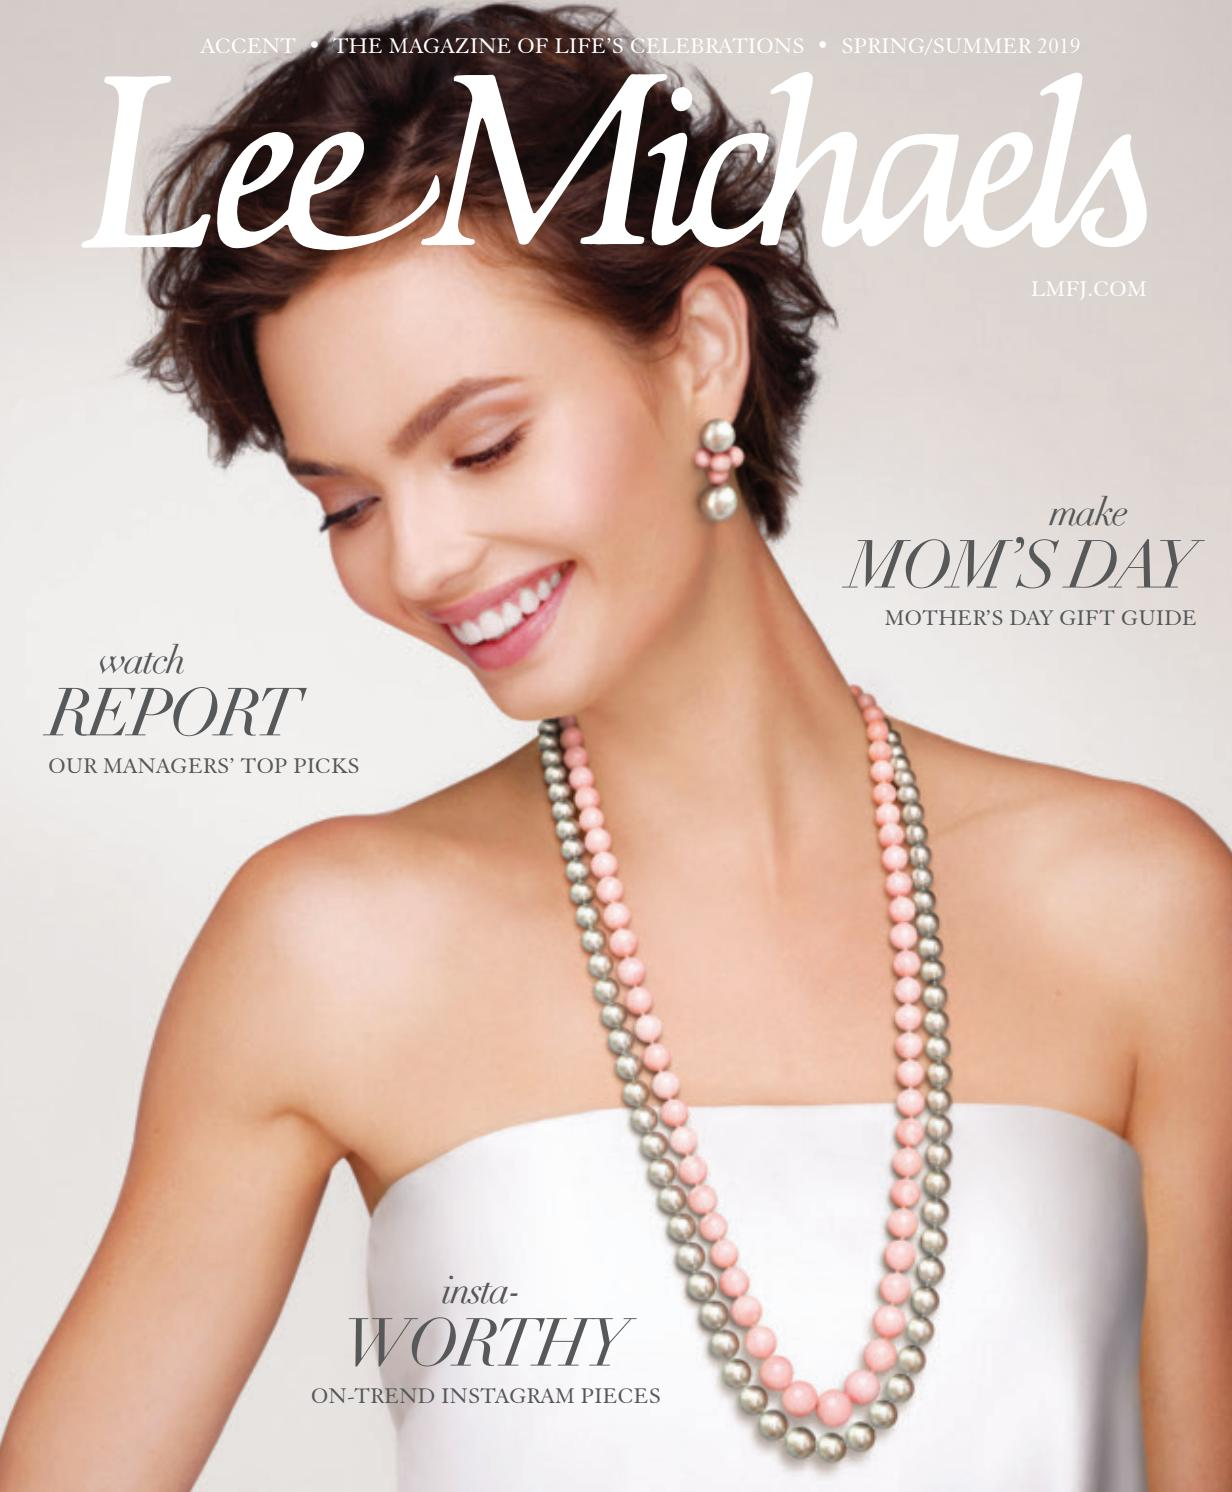 fead0fe79 Lee Michaels: Spring/Summer 2019 by Wainscot Media - issuu